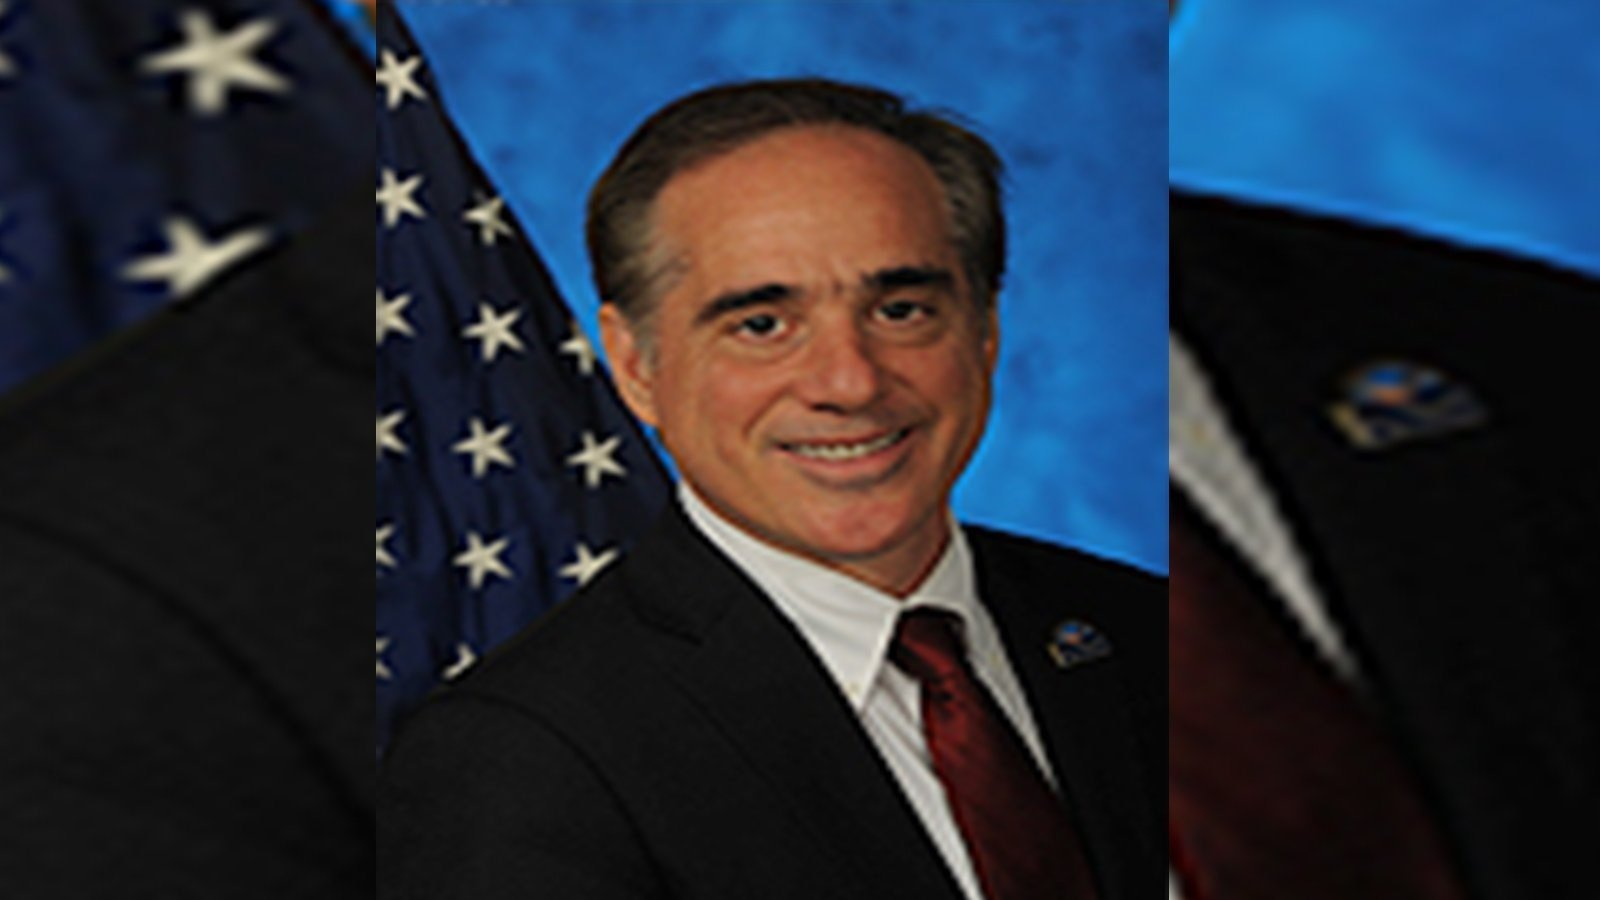 US Veterans Affairs Office reports on investigation of Secretary Shulkin's travel expenses